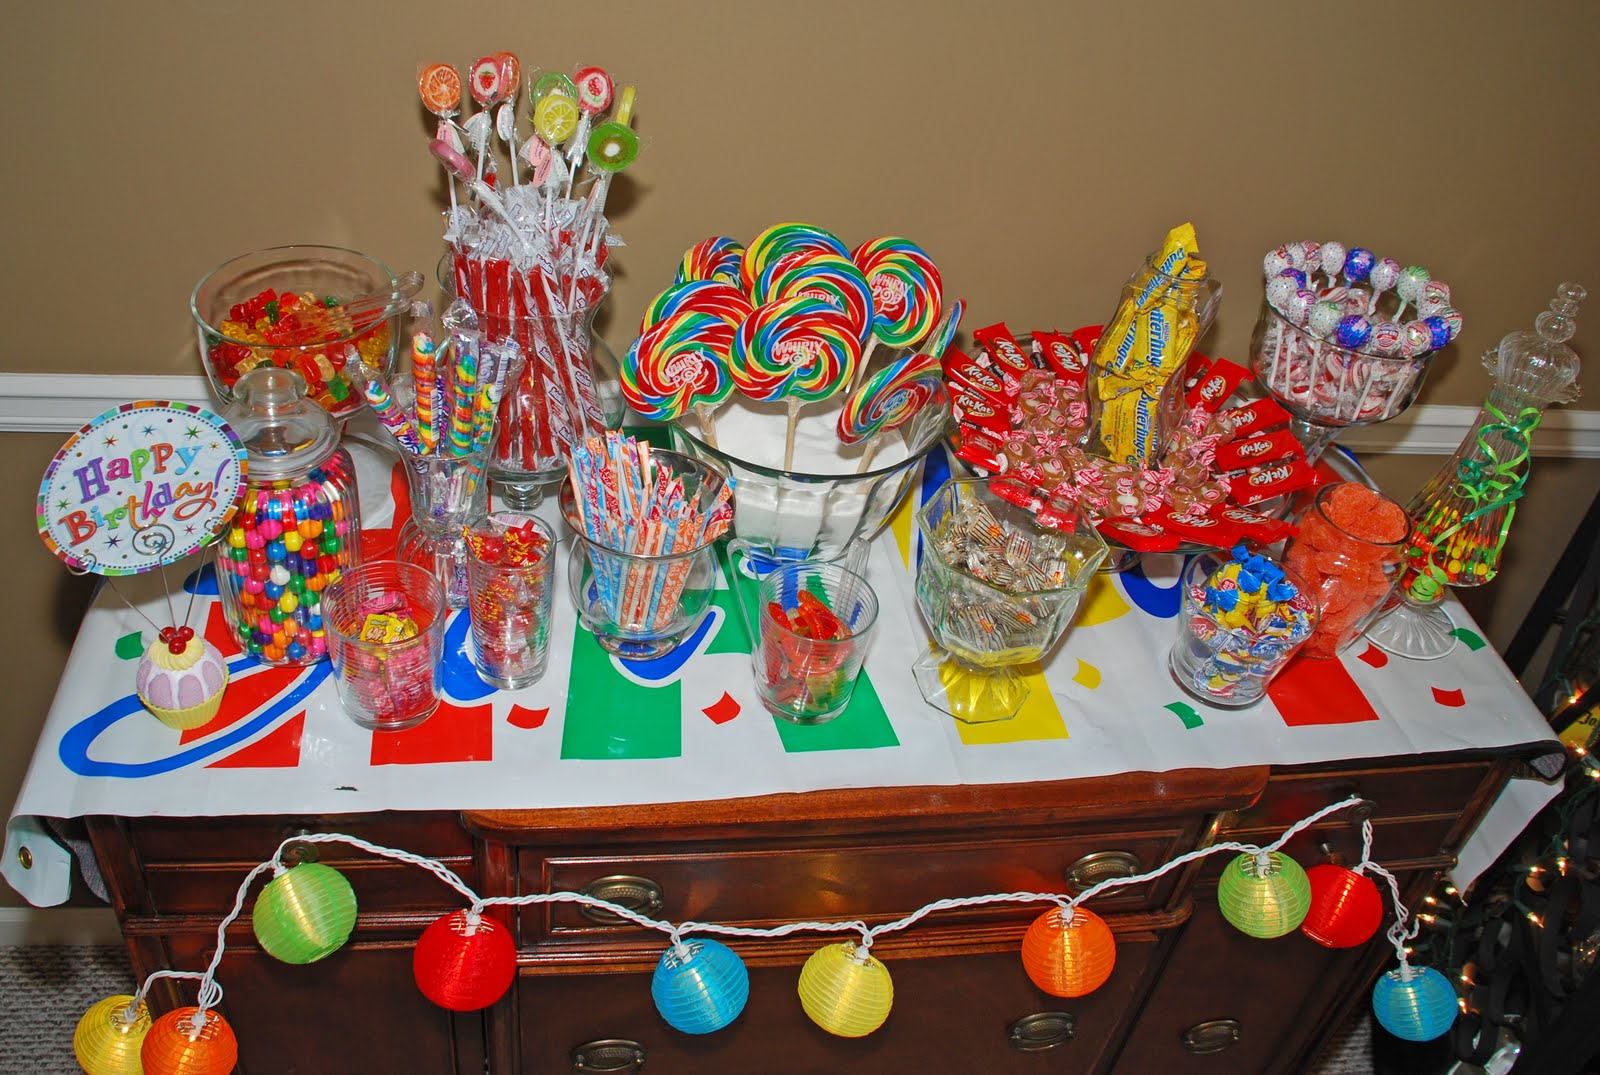 Show Me Your Candy Buffet Page 21 BabyCenter